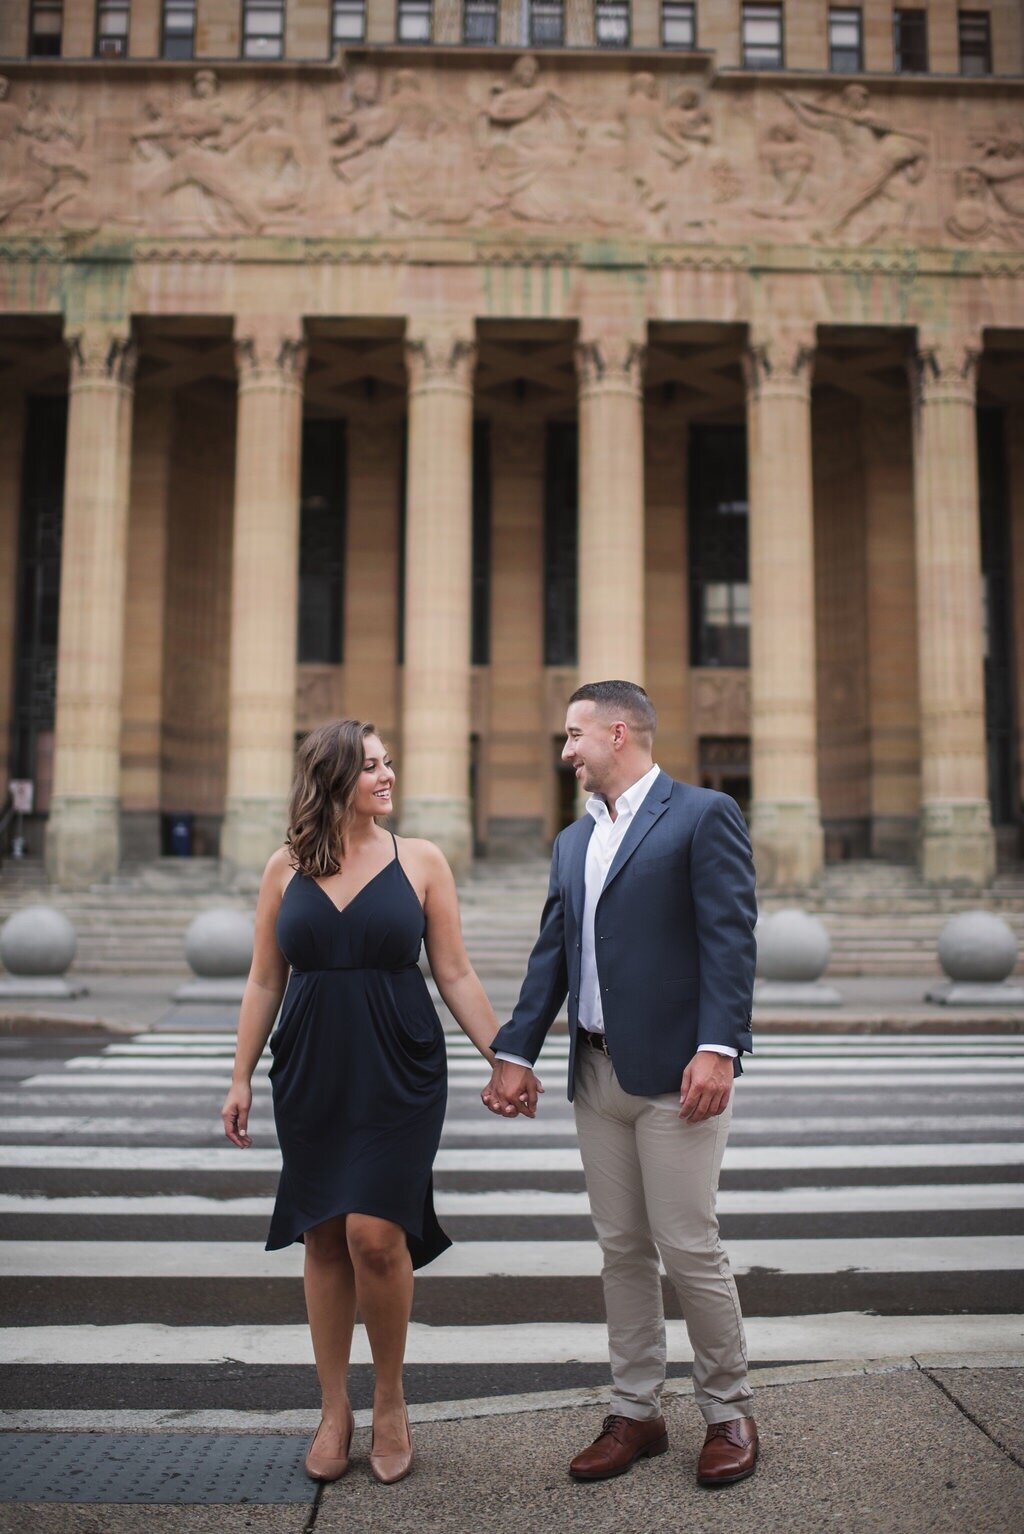 our engagement photos were taken in front of Buffalo City Hall, photo by Colin Gordon  Outfits are 3+ years old, dress was BCBG